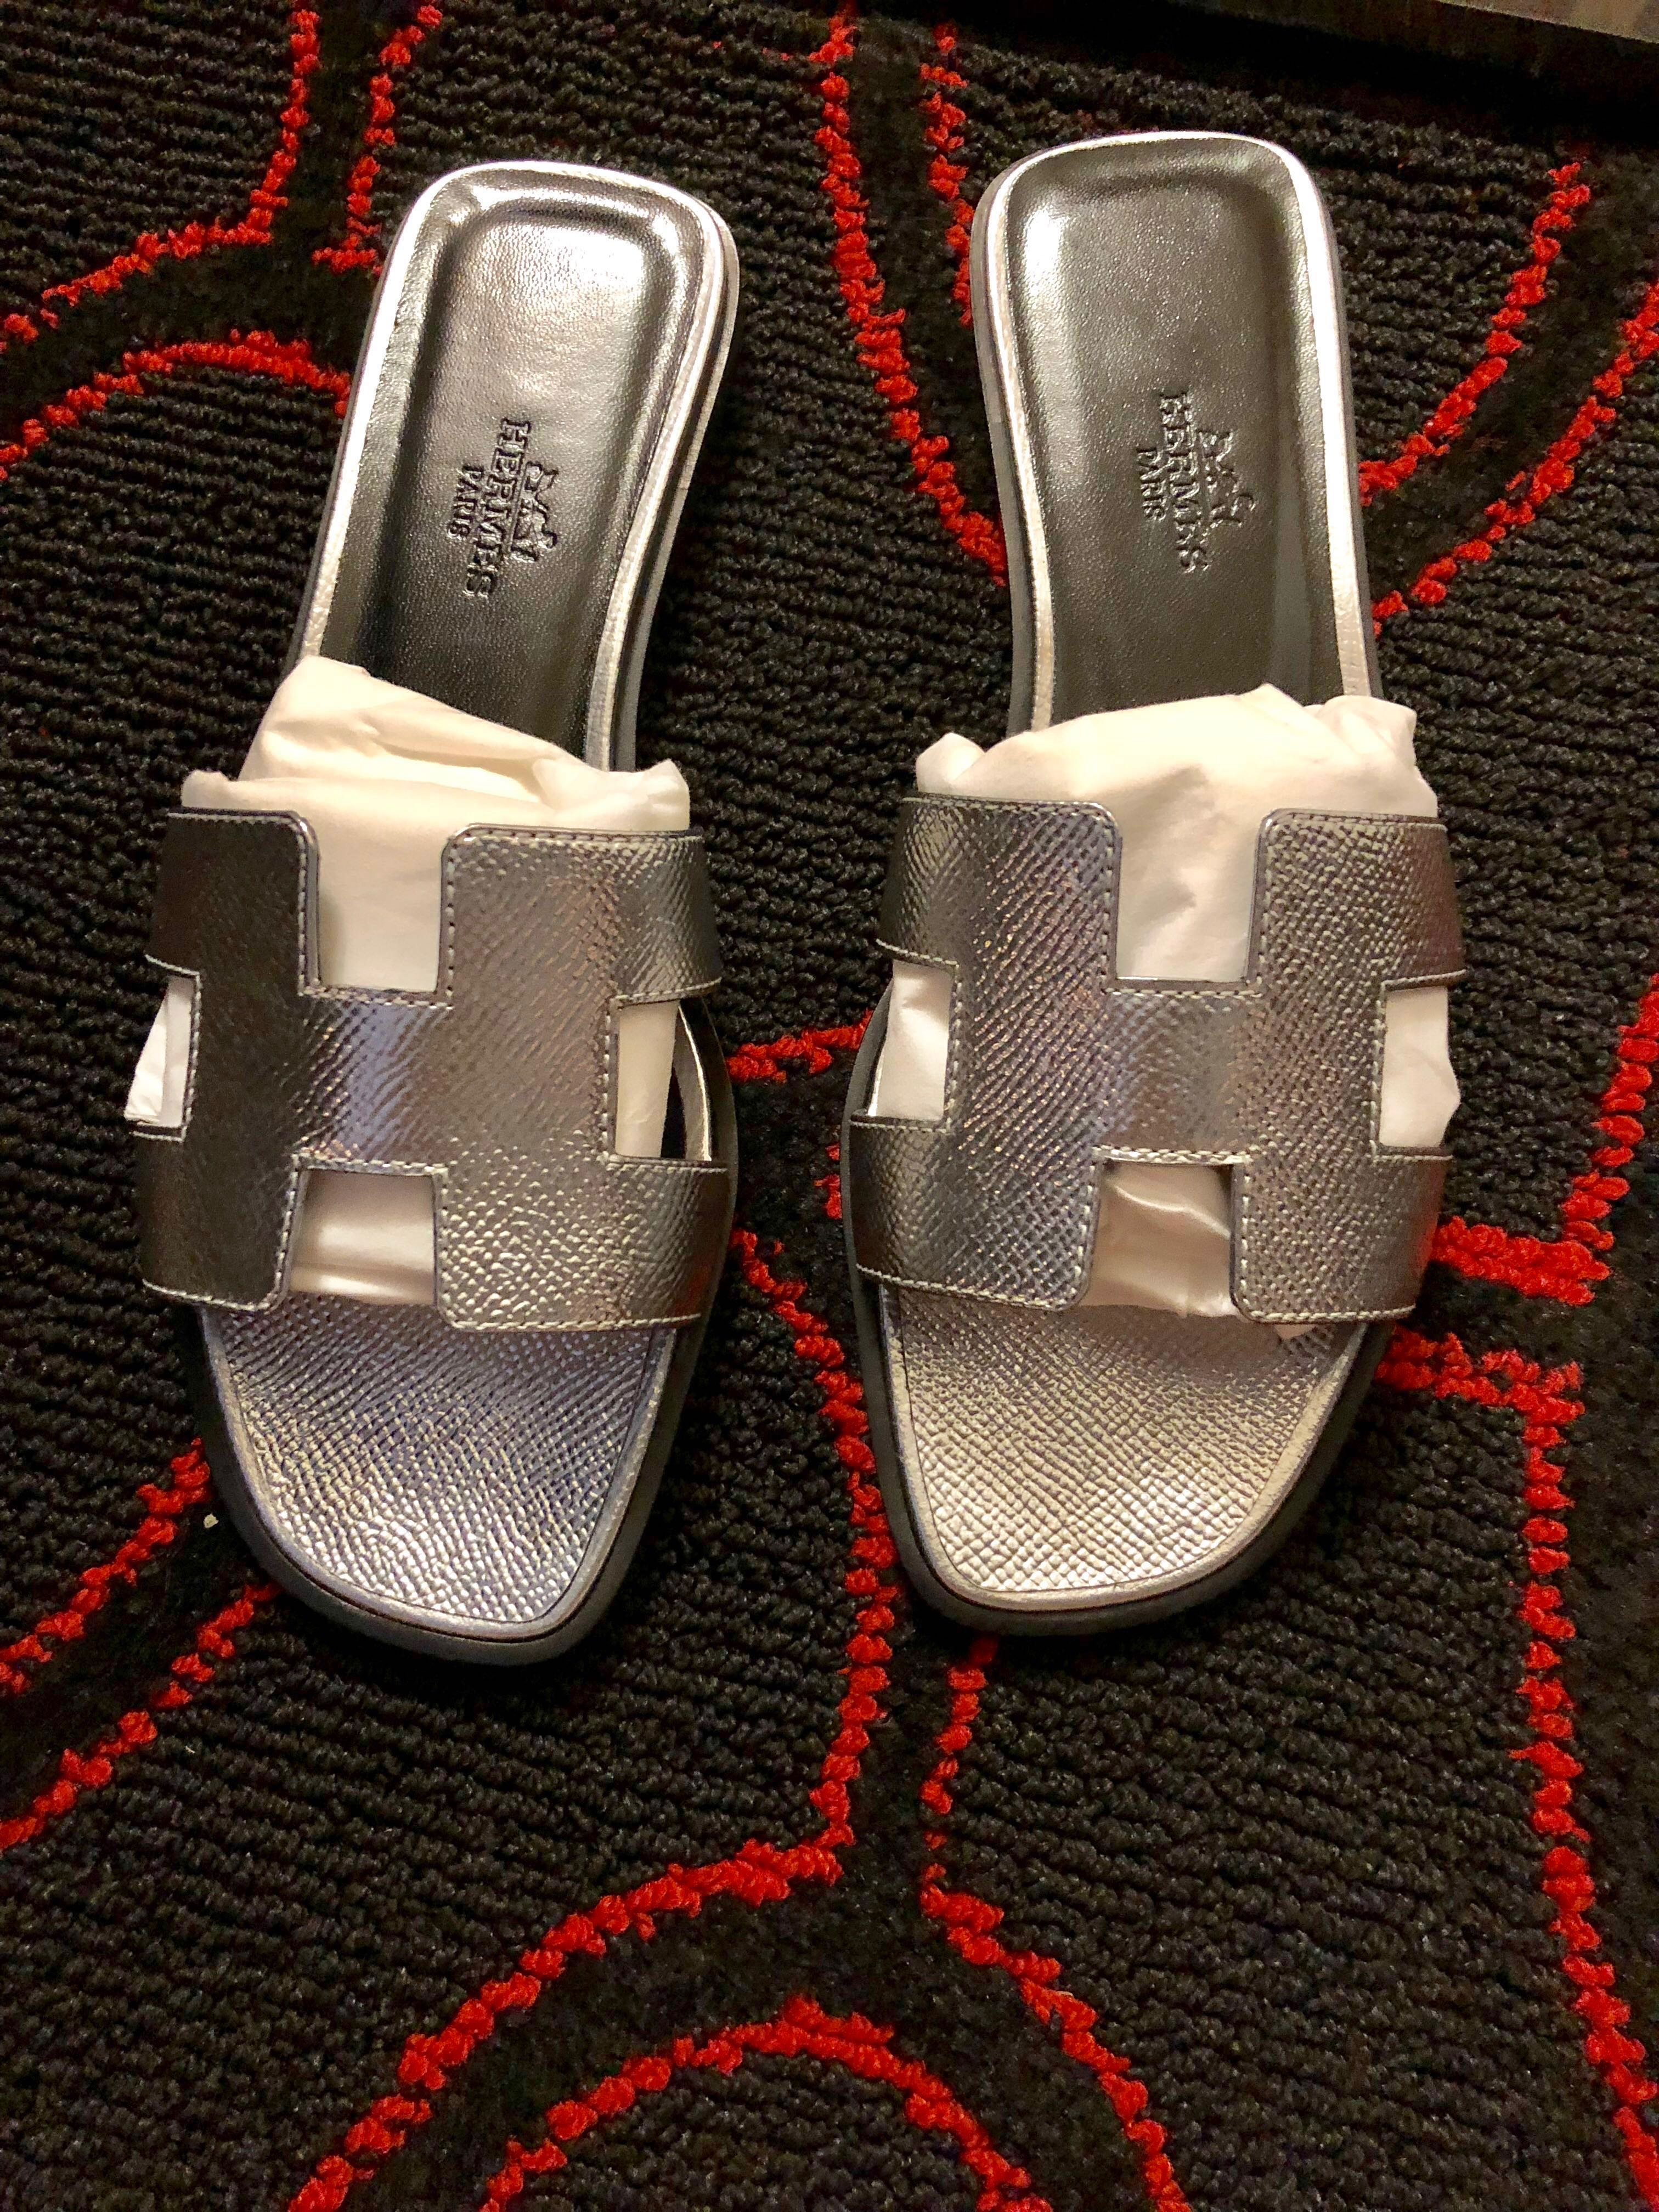 ea12345a0664 Hermes Oran Sandals, Women's Fashion, Shoes, Flats & Sandals on Carousell